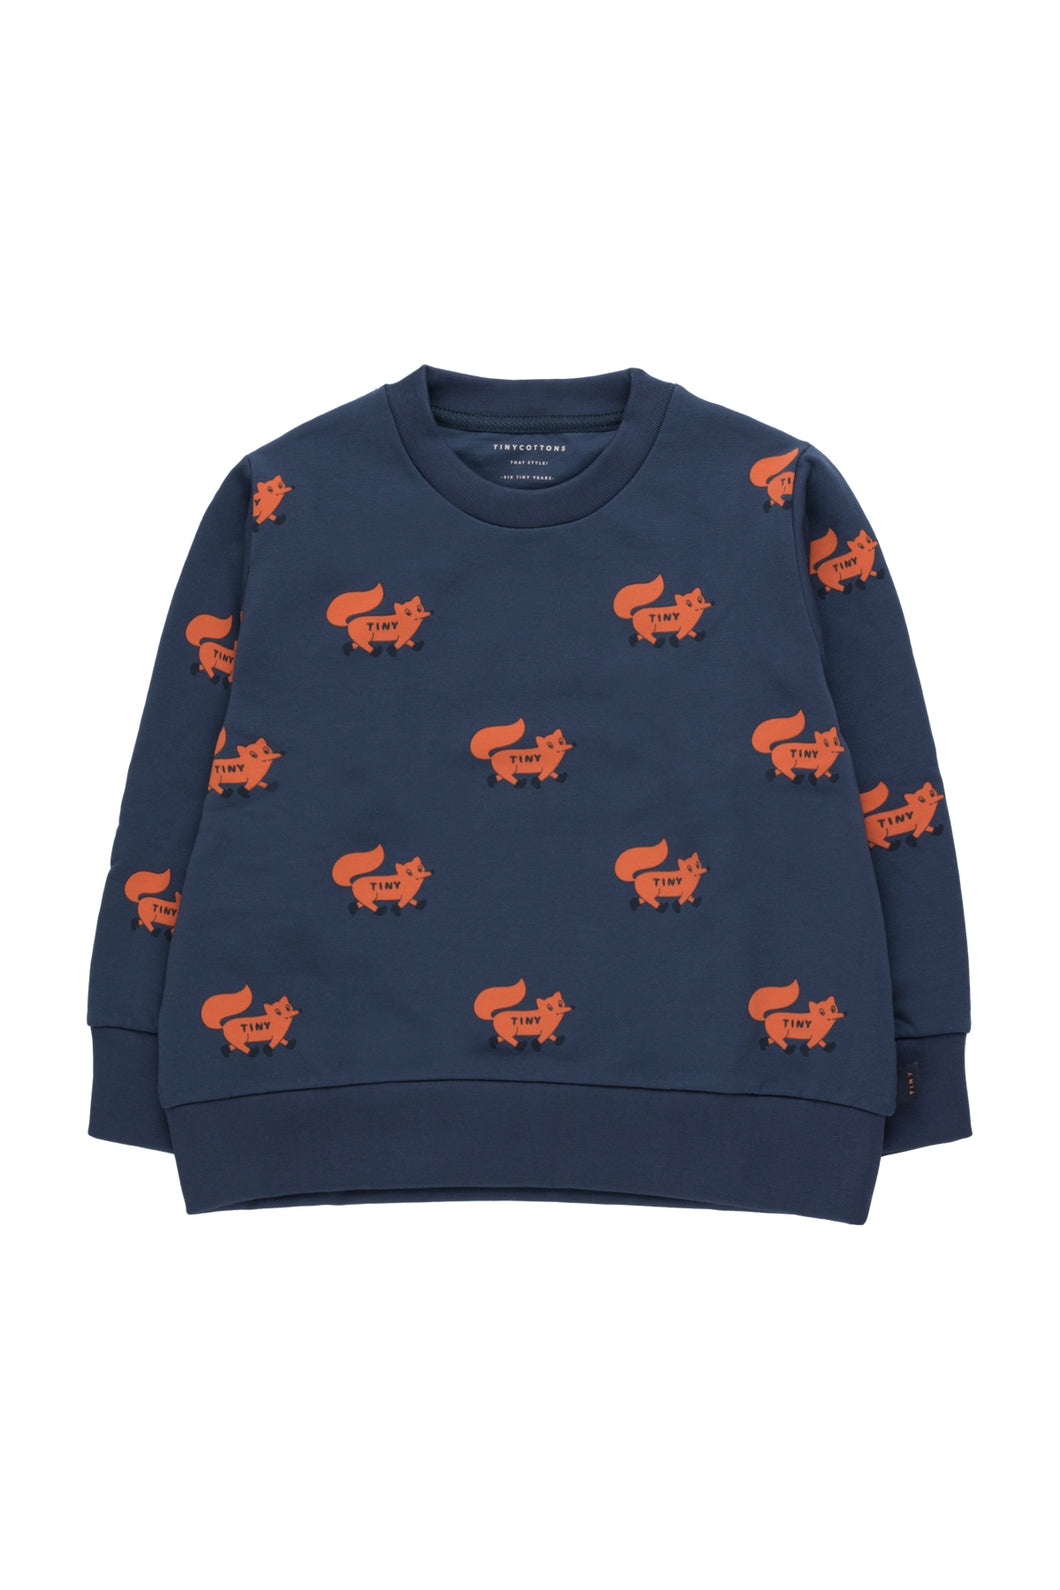 "Tiny Cottons ""FOXES"" SWEATSHIRT"